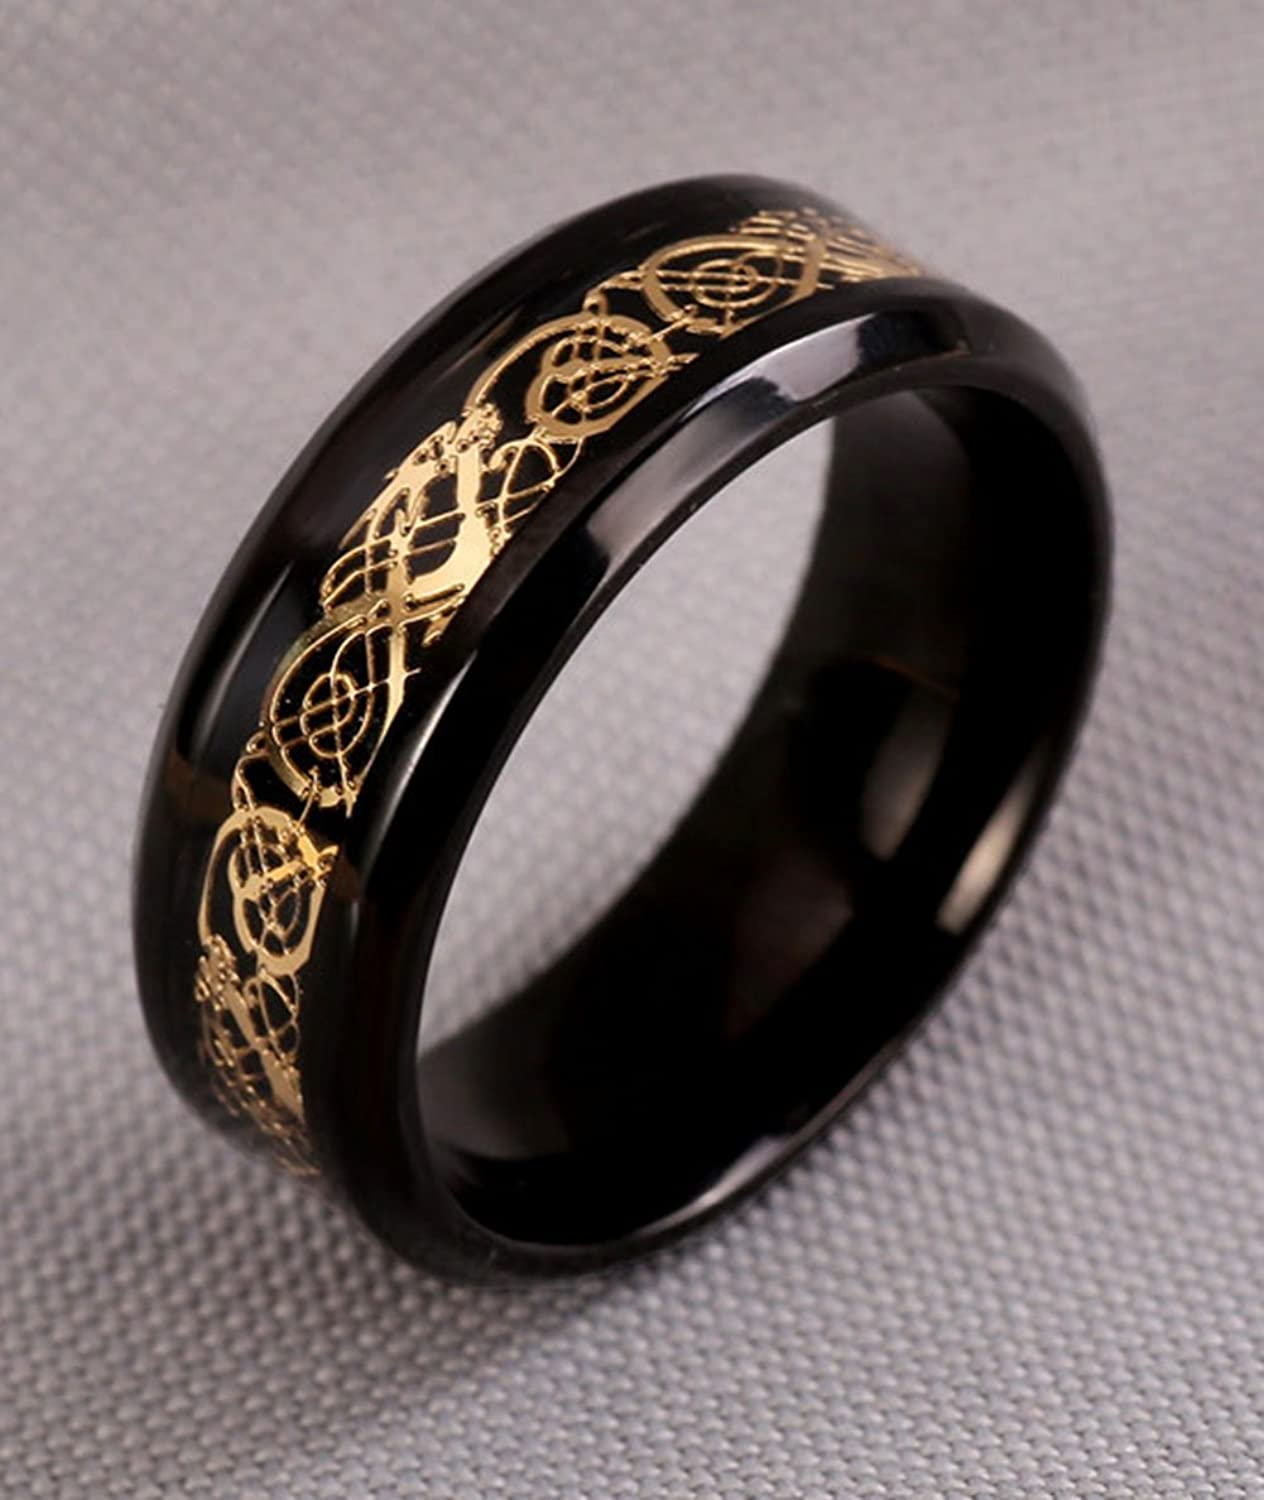 Tanyoyo Black Gold Celtic Dragon Stainless Steel Ring Wedding Band Jewelry Size 7 14